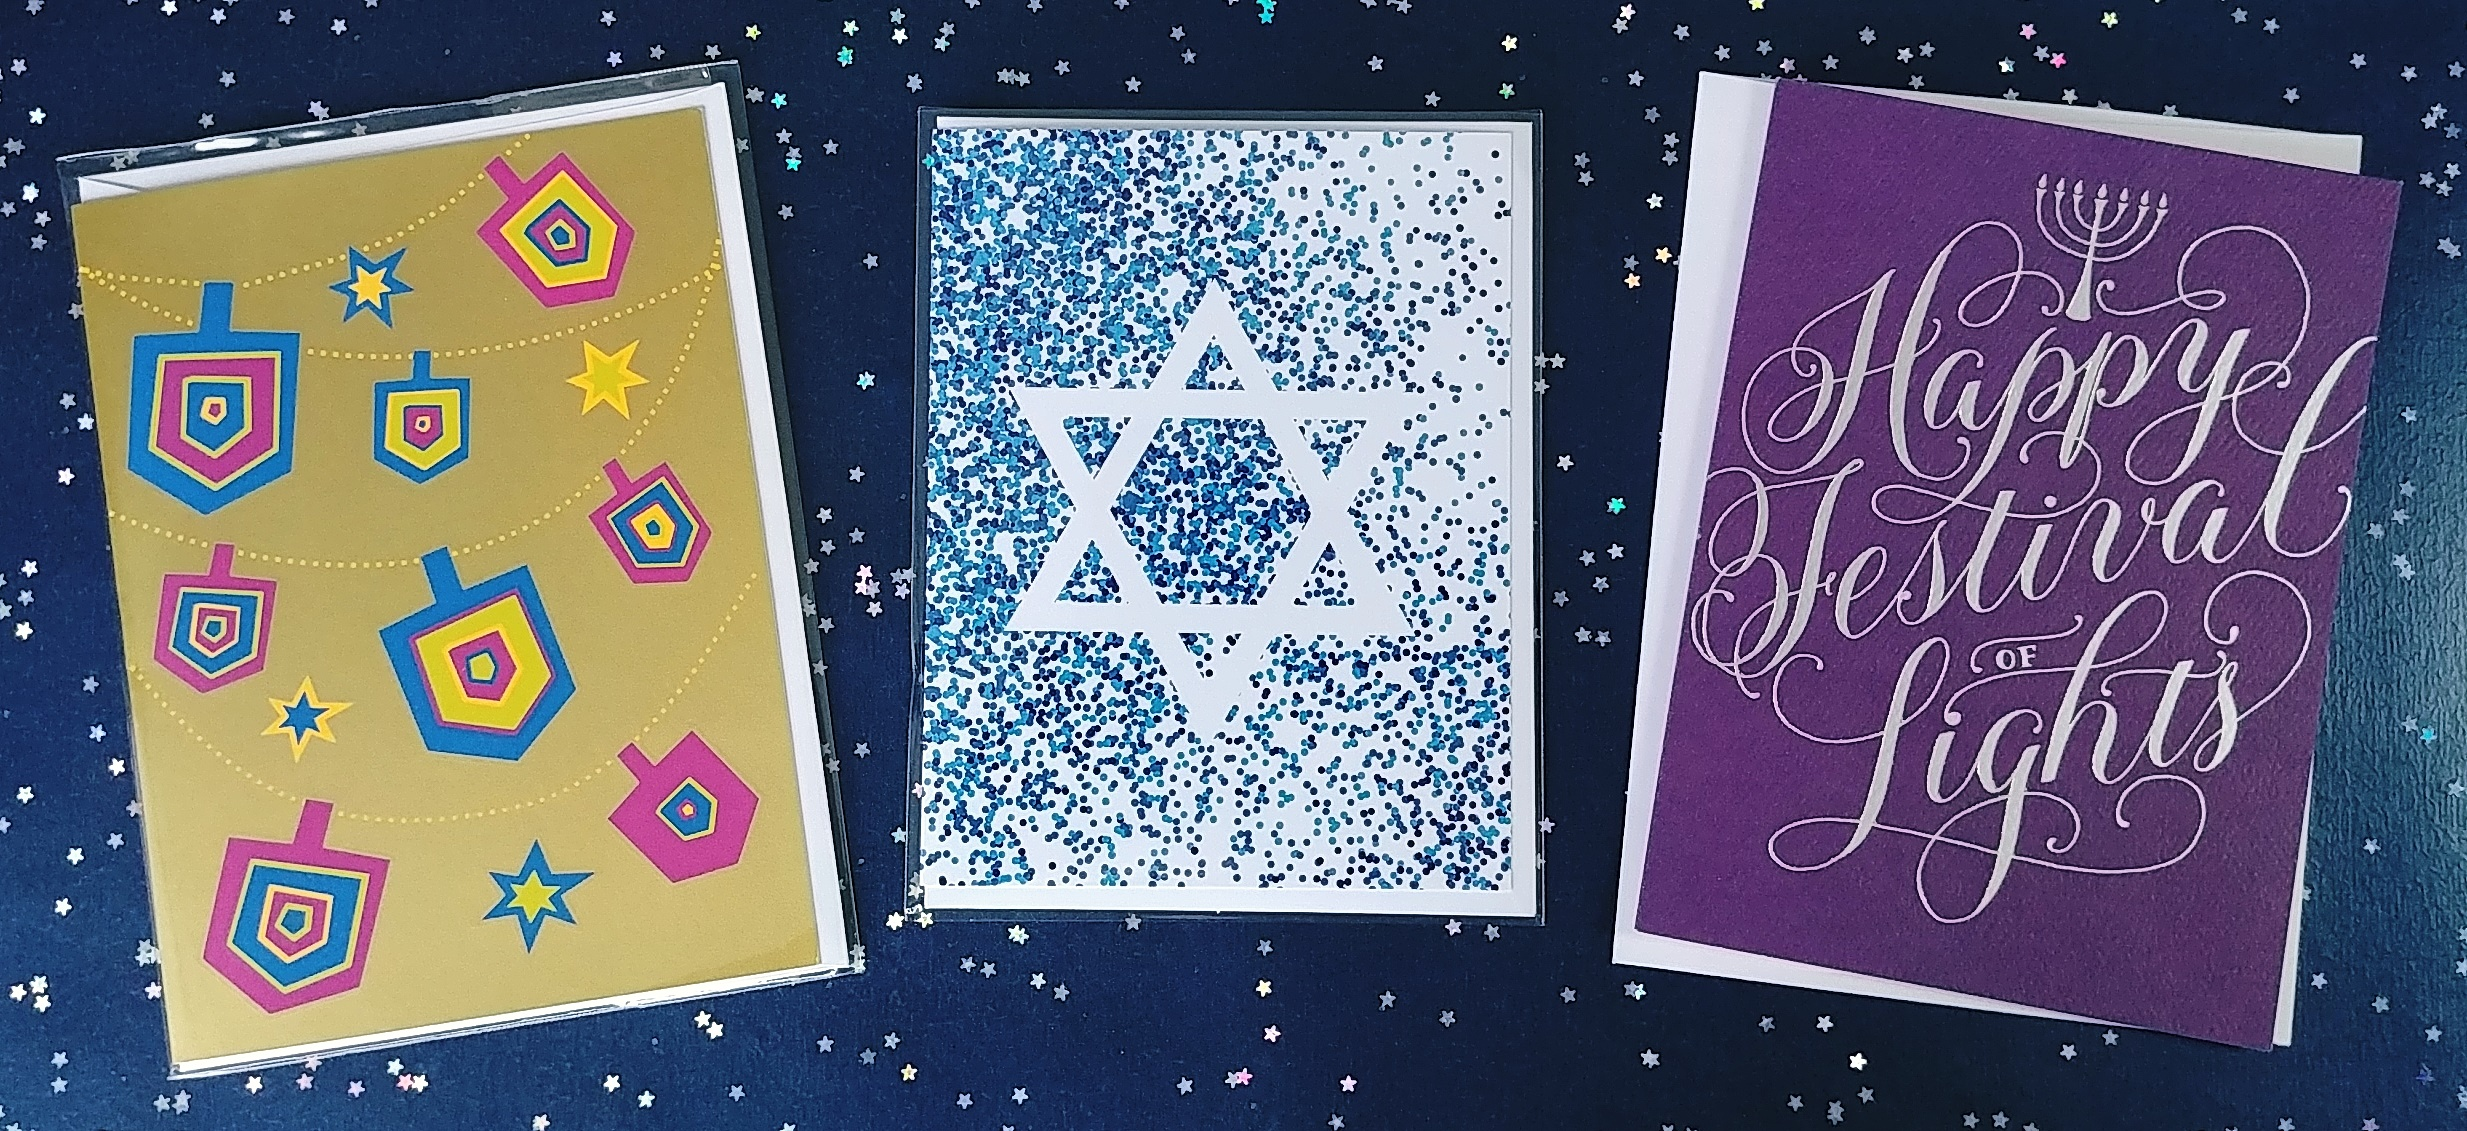 Get ready for Hanukkah with candles, serviettes, wrapping paper, decor items… along with gorgeous cards of course! Hanukkah begins this year on Monday December 3rd. Wishing you light and laughter at your Hanukkah gatherings!  November 21, 2018